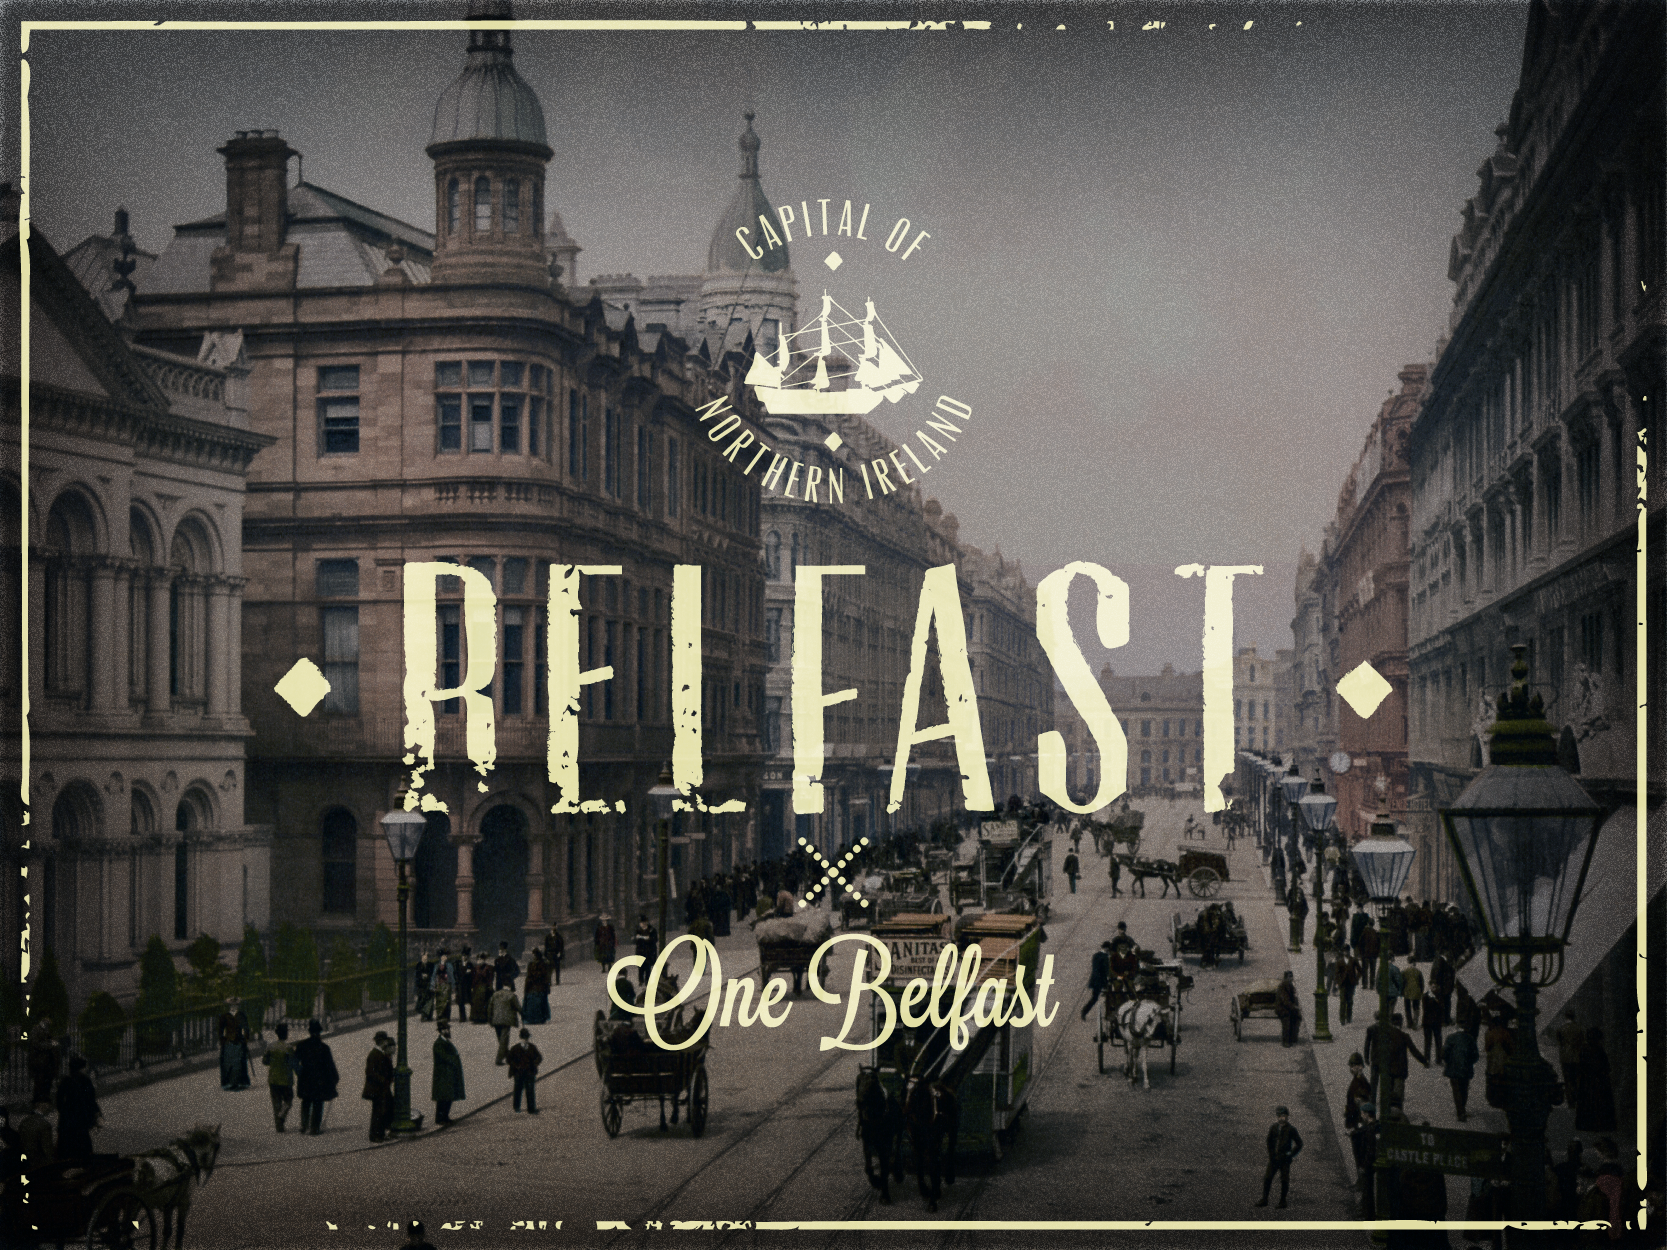 Belfast 1900.png by Peter Voth